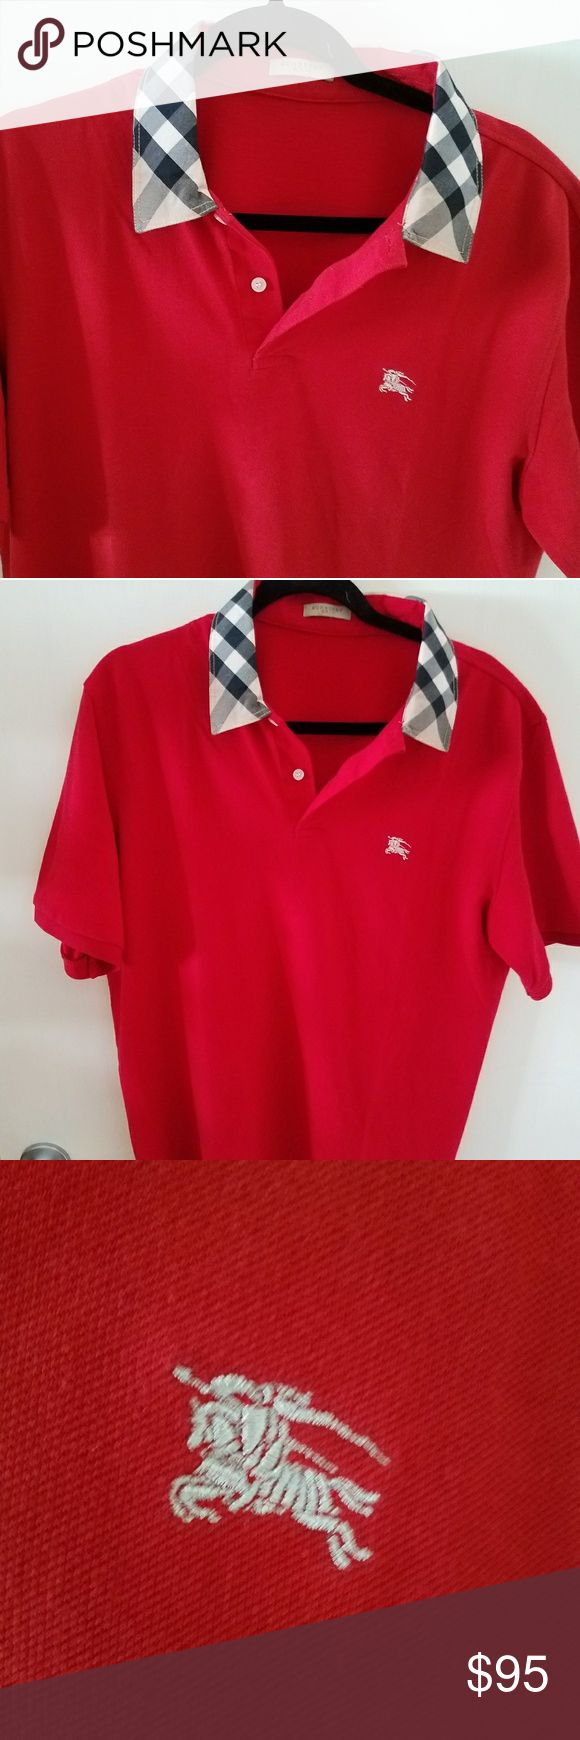 """100% Authentic Burberry Brit polo Shirt. Very Rare 100% Authentic Burberry Brit polo Shirt. Very Rare! This is a UK exclusive, not available in the USA!  No size tag, but equal to USA Large or XL Slim  Like New. Worn once for an Hour. MINT condition!  23"""" Armpit to armpit. Please compare (SEE Last Pic)  Better Price through PPal Text me  Eric 925-984-1655  Low-ball offers will be ignored, sorry no trades  If you have an offer, make an offer, don't comment and ask if I'll take a certain…"""